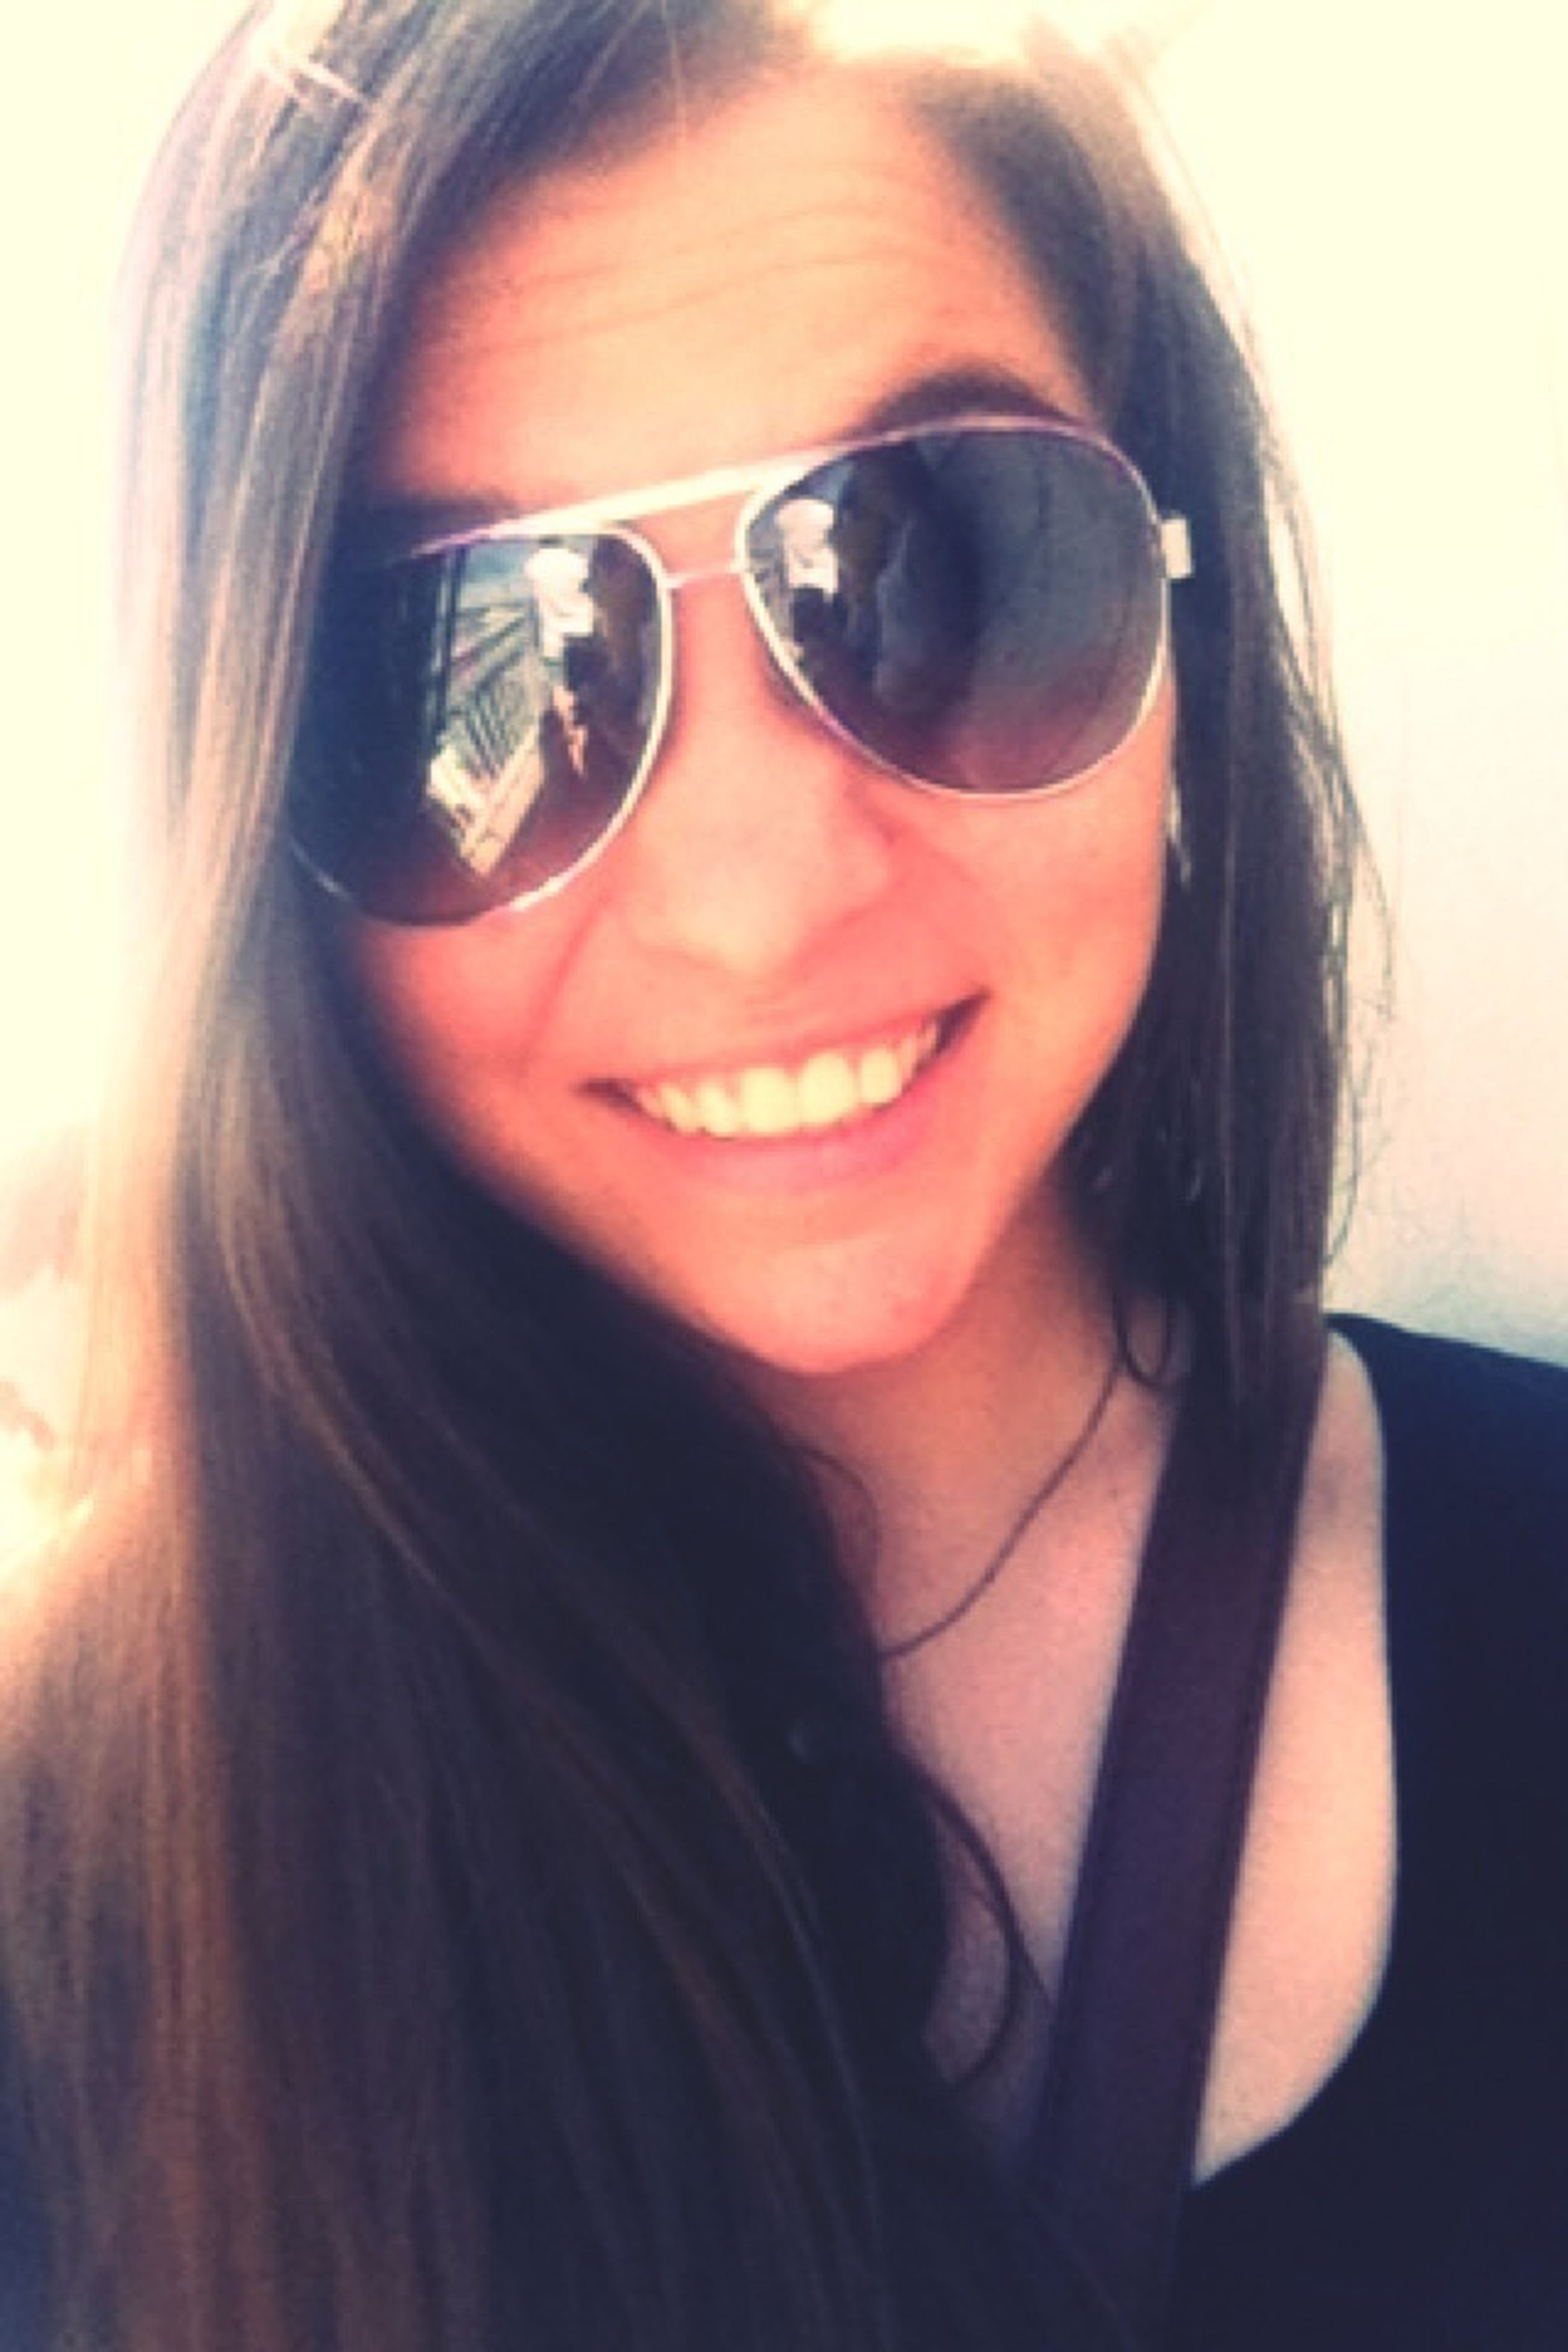 young women, young adult, headshot, looking at camera, person, portrait, lifestyles, long hair, leisure activity, front view, indoors, head and shoulders, close-up, sunglasses, smiling, brown hair